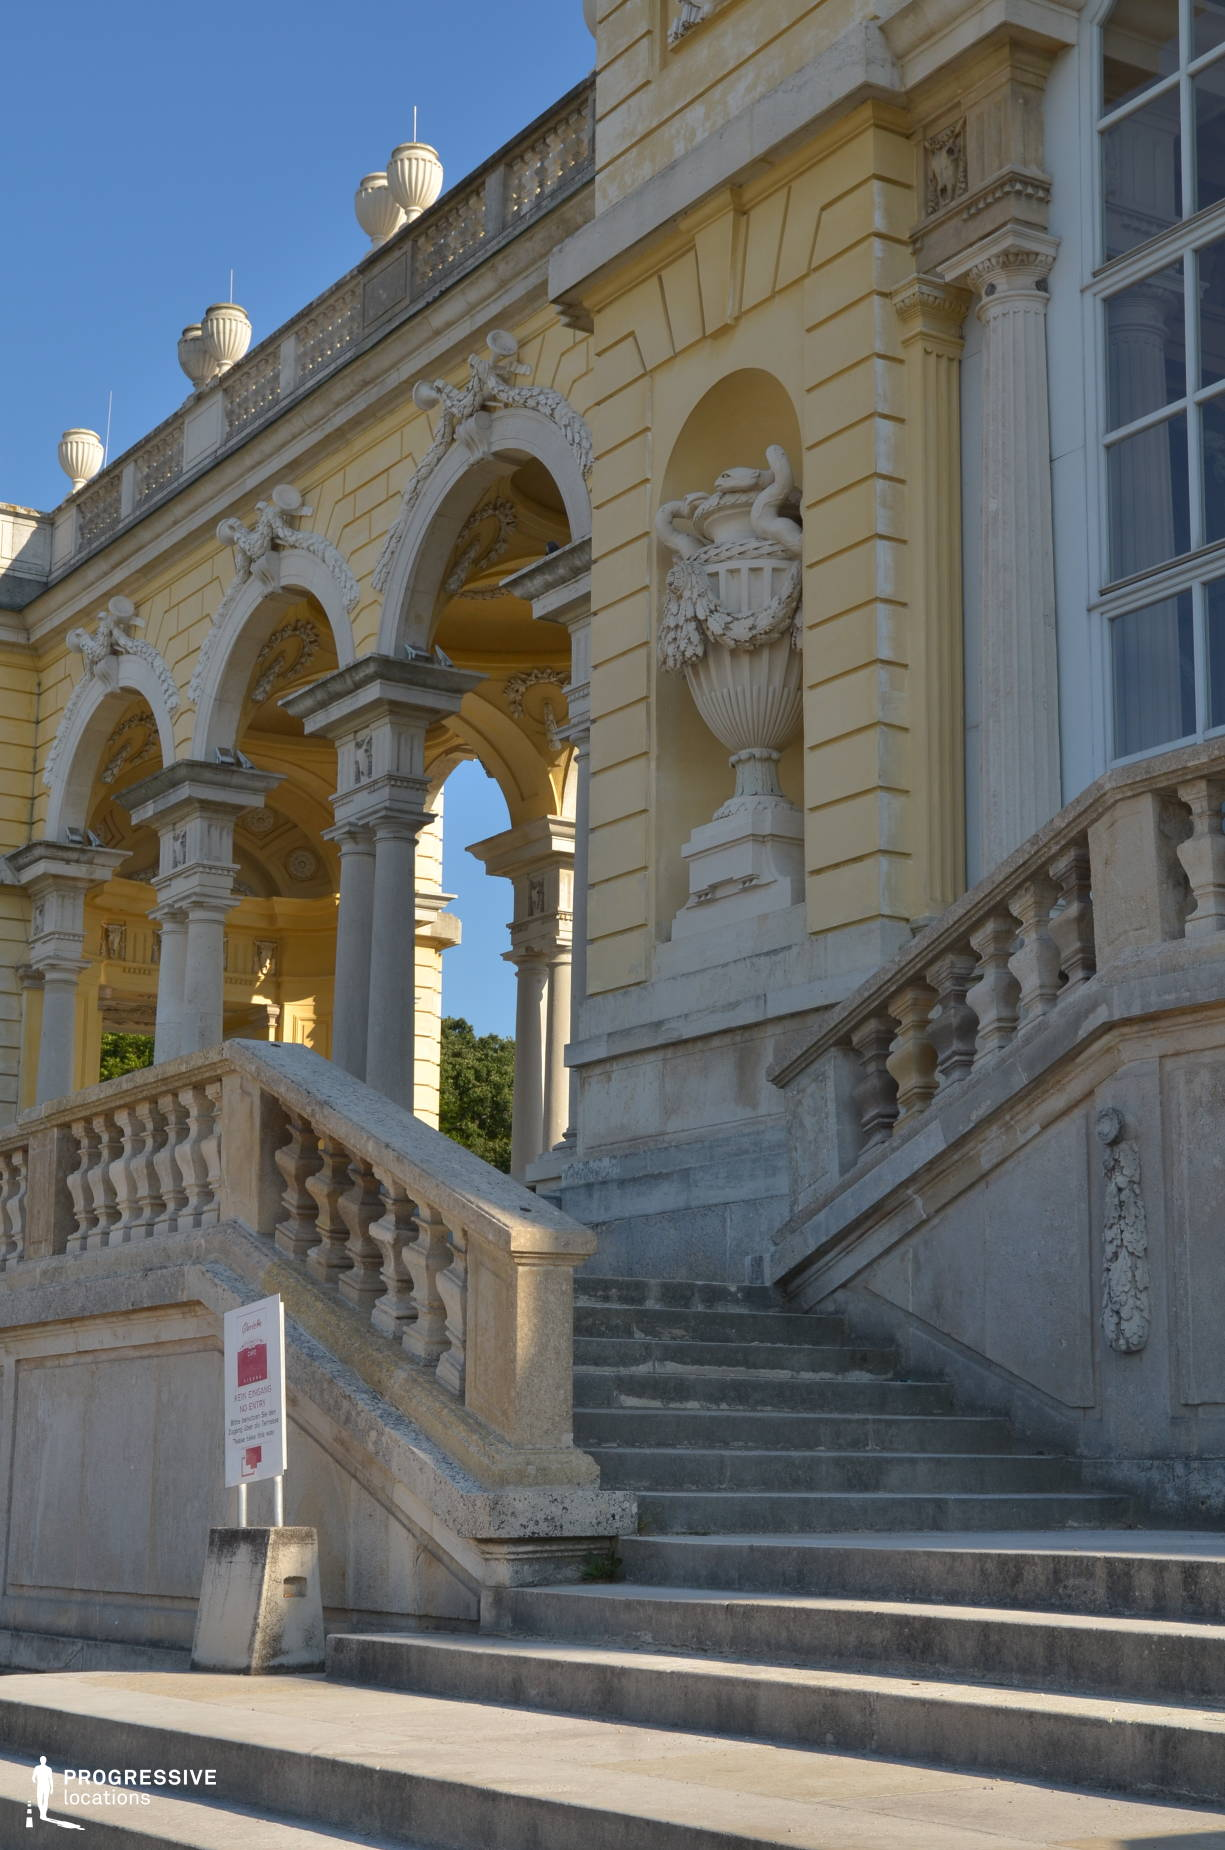 Locations in Austria: Gloriette Stairs, Schoenbrunn Palace